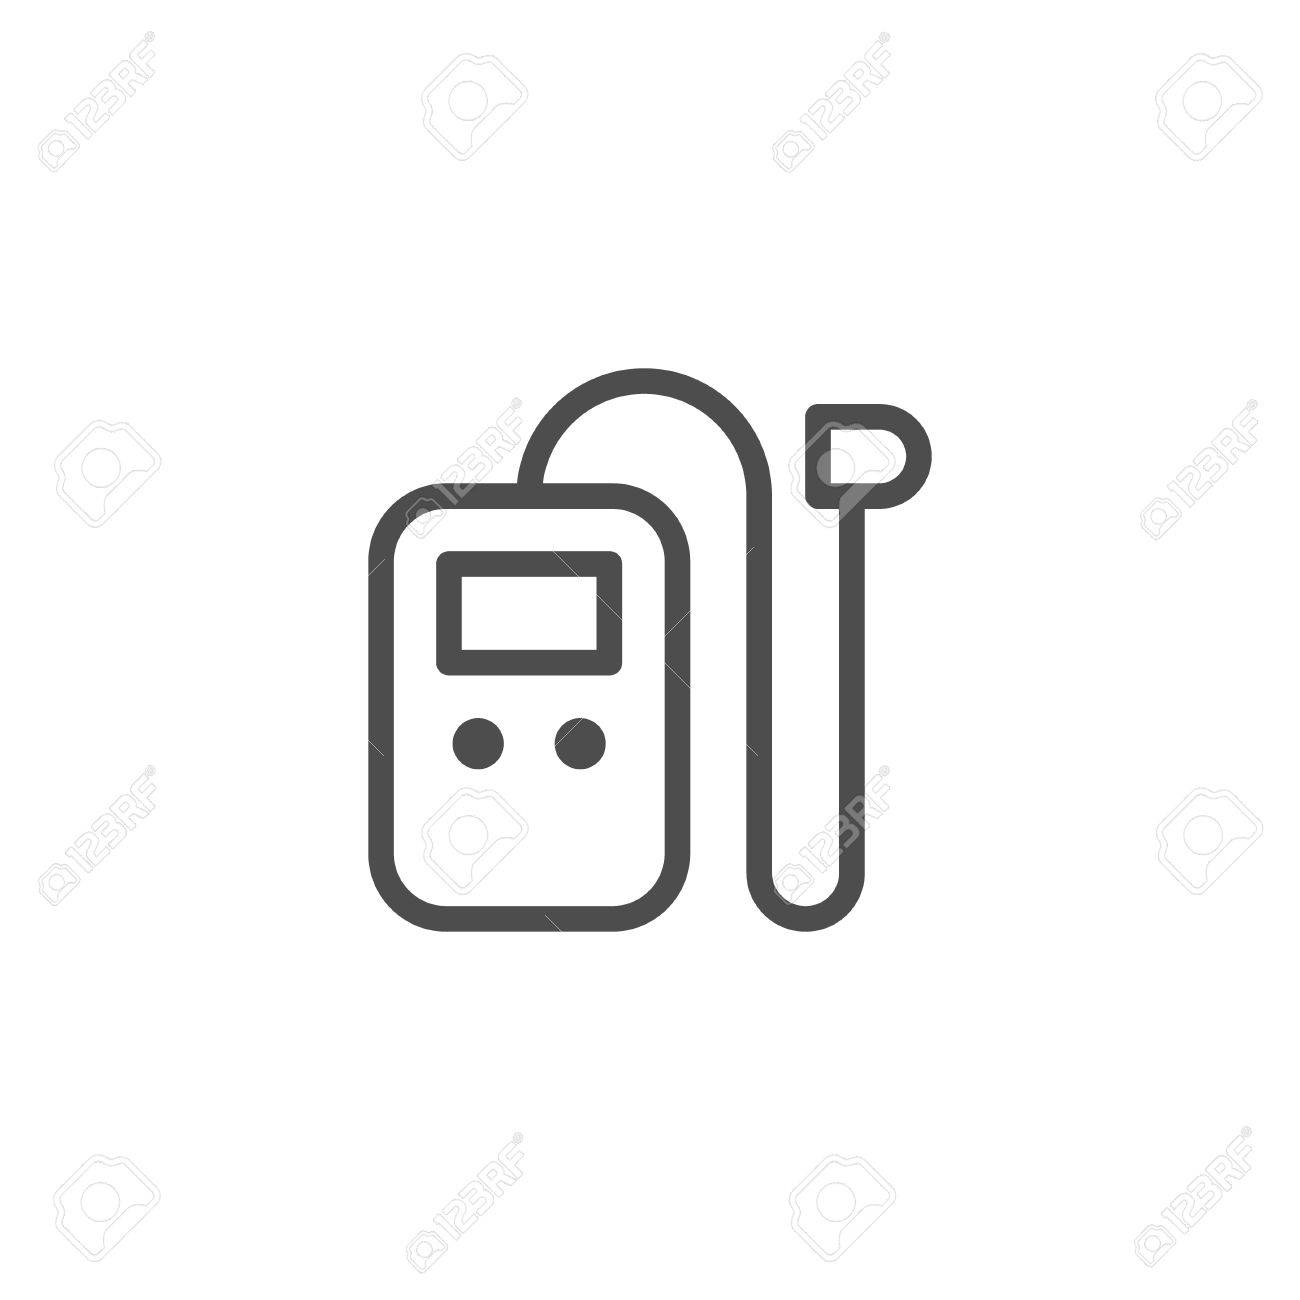 Hearing Aid Line Icon Royalty Free Cliparts Vectors And Stock